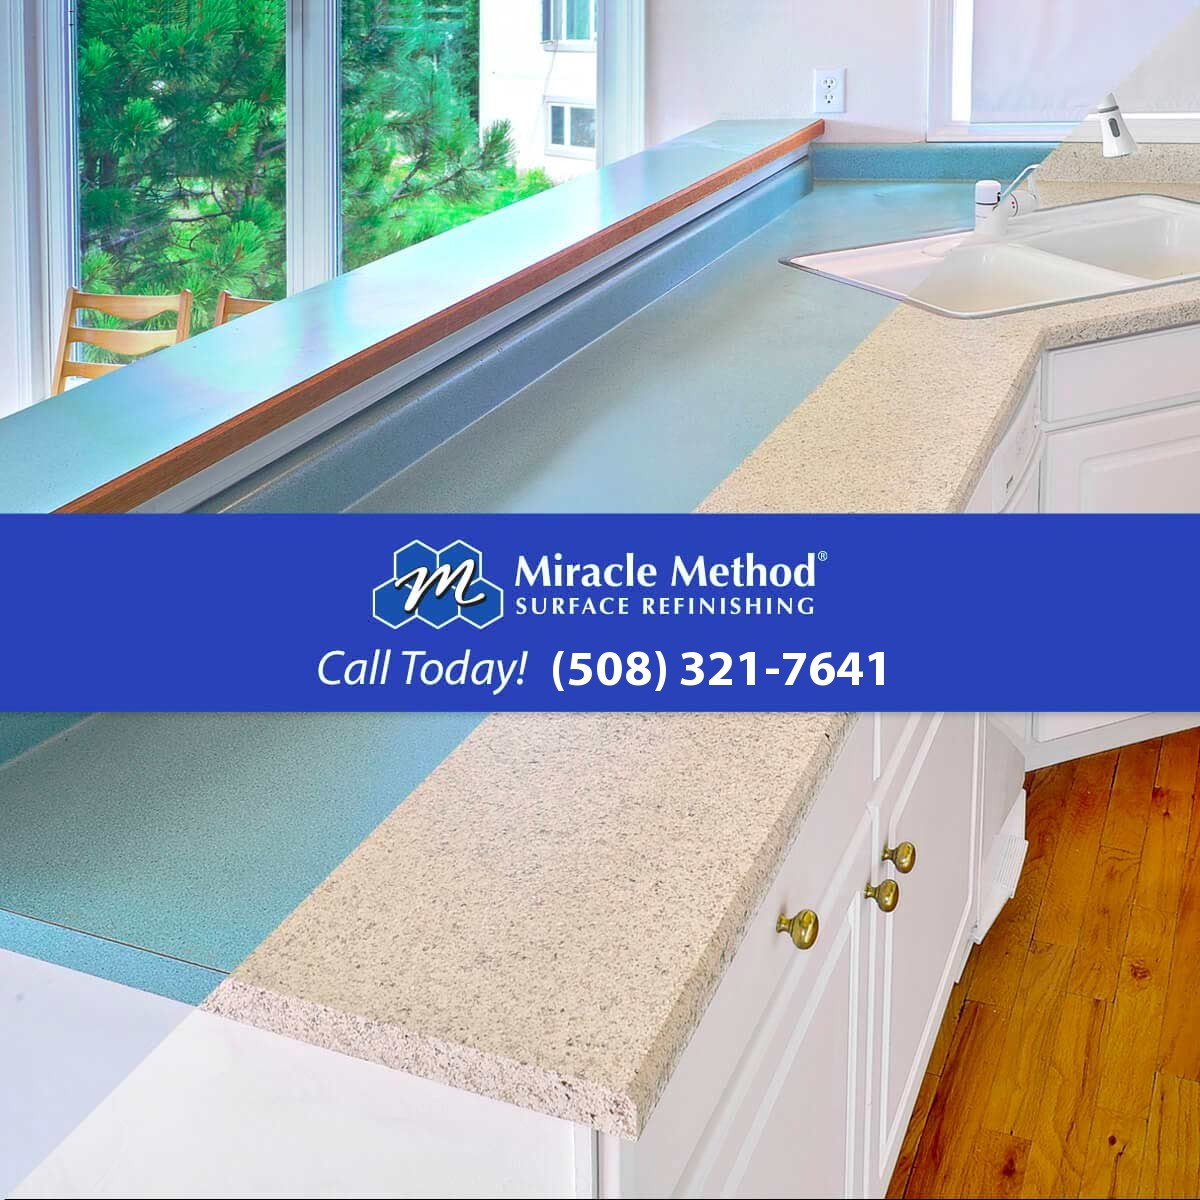 Fiberglass Tub Repair Medford, MA | Miracle Method of Boston Metro West